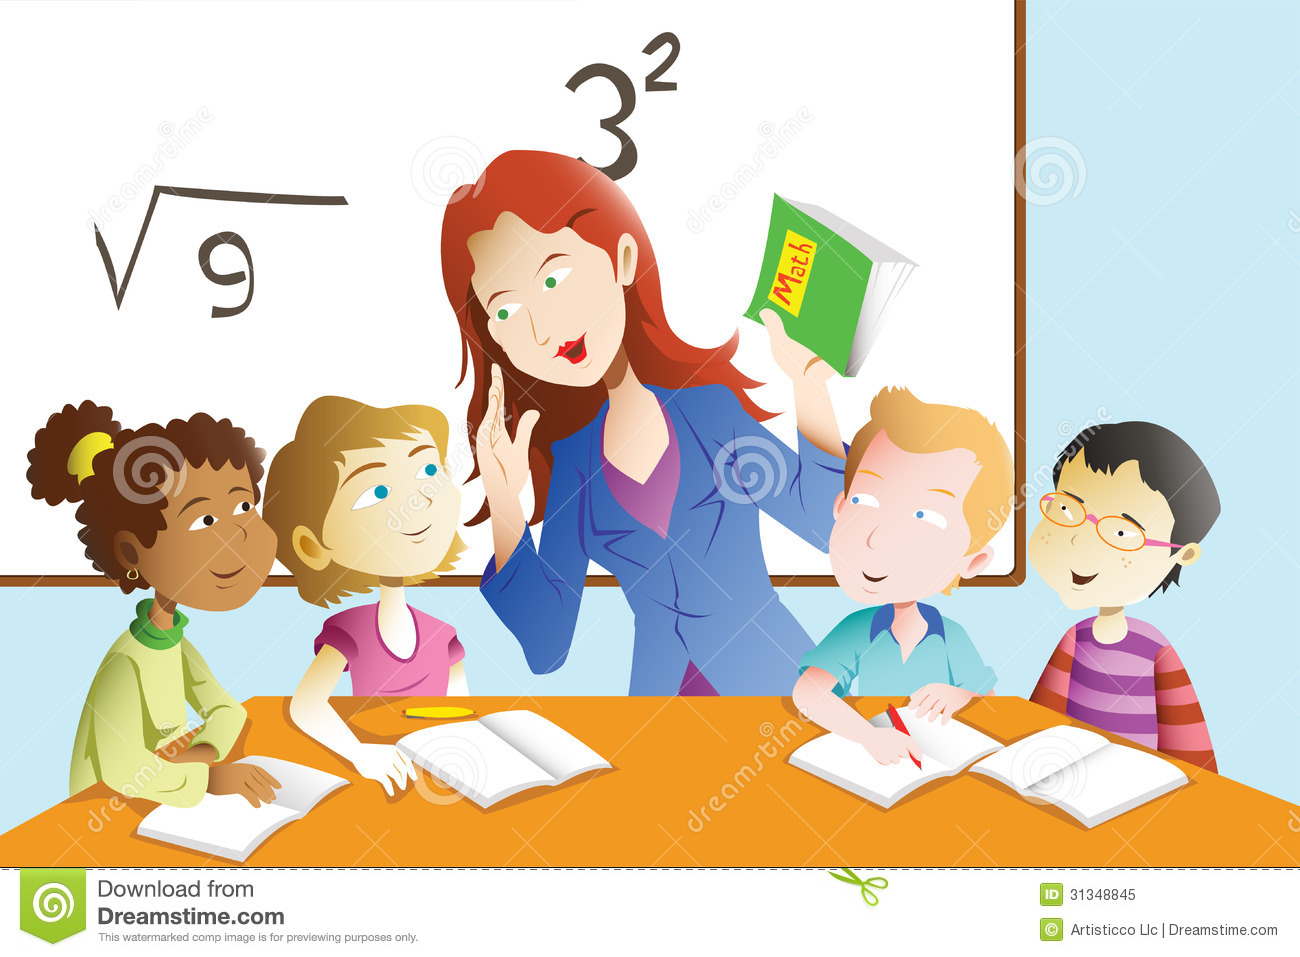 Teacher with kids clipart clipart freeuse library Teacher with kids clipart - ClipartFest clipart freeuse library